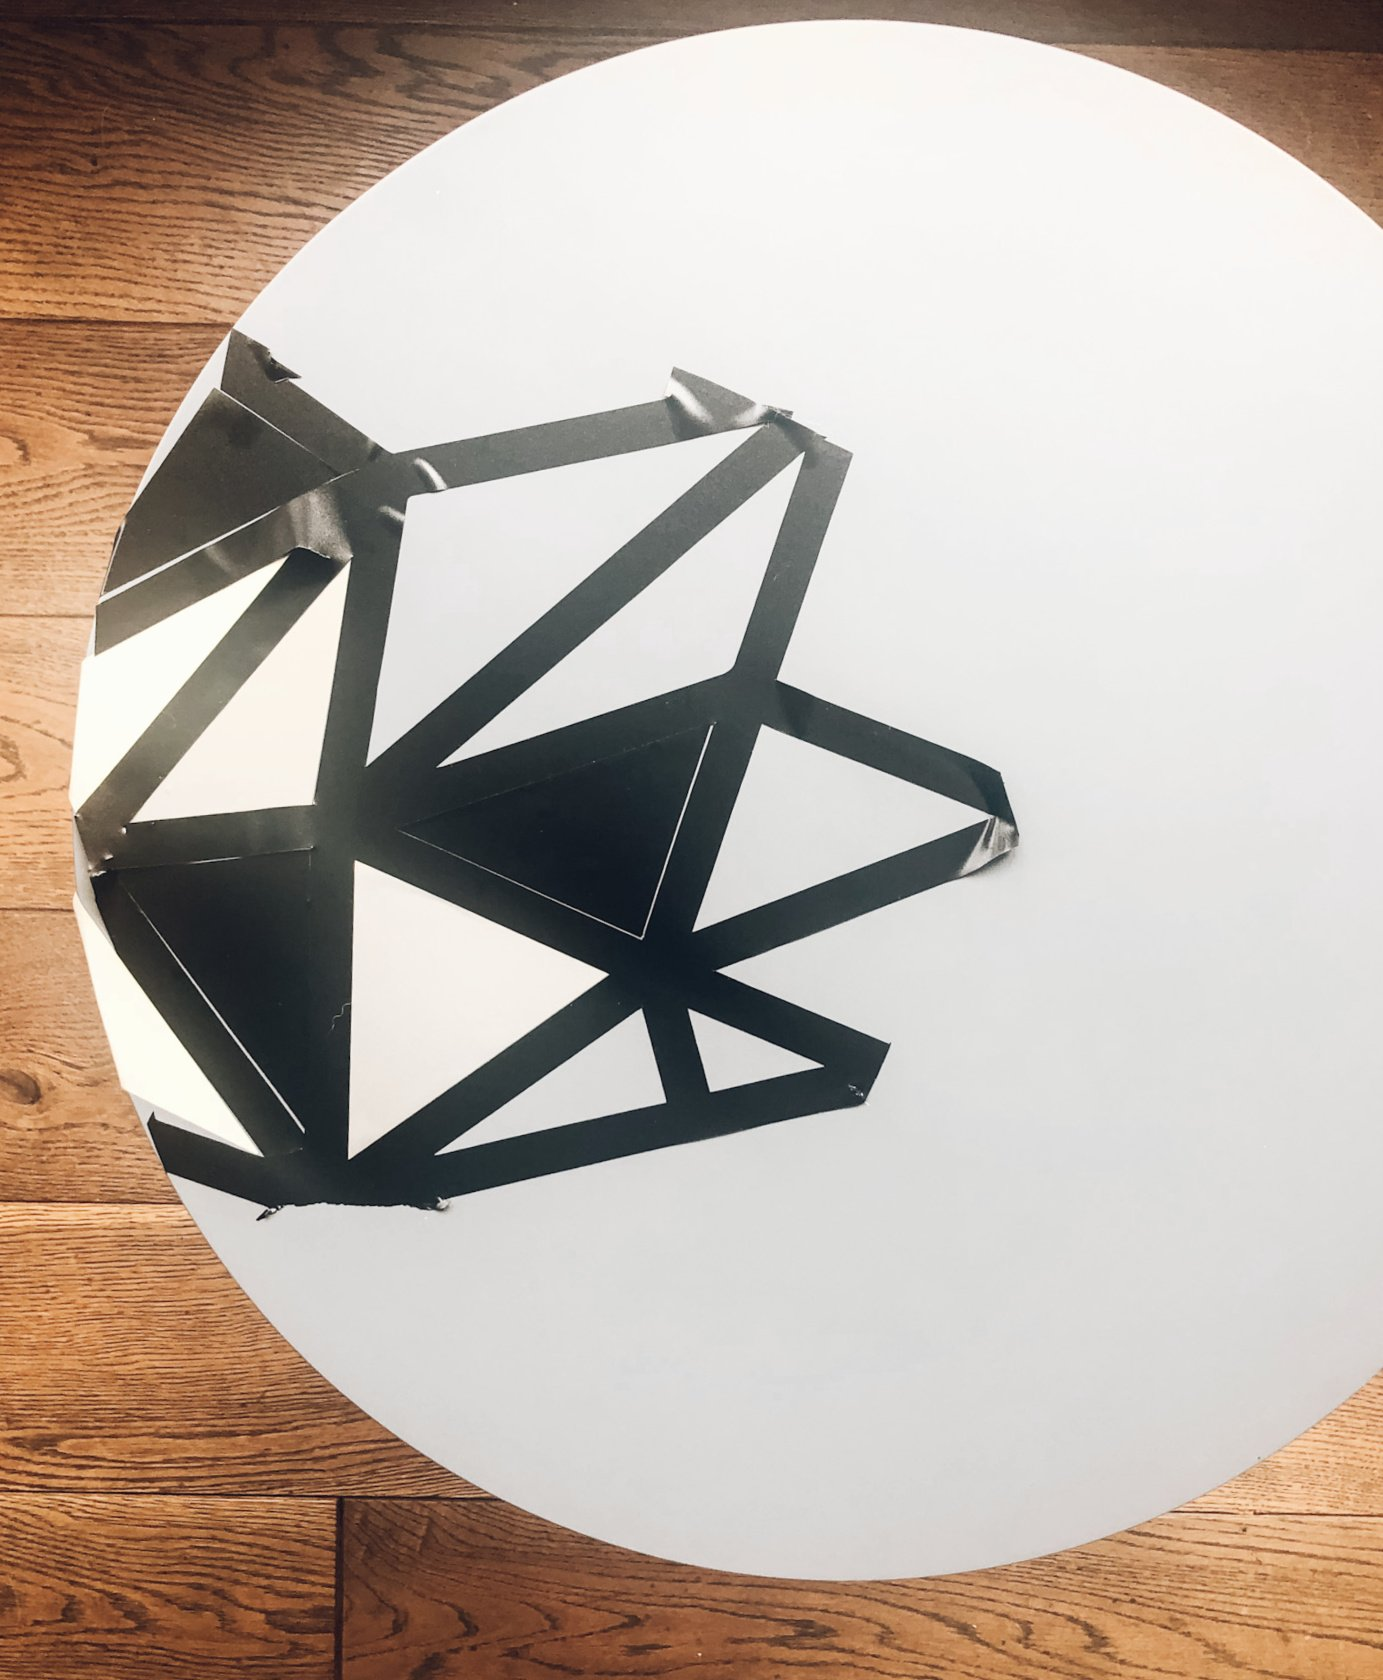 use the outer cuts from the vinyl as a pattern guide to get started